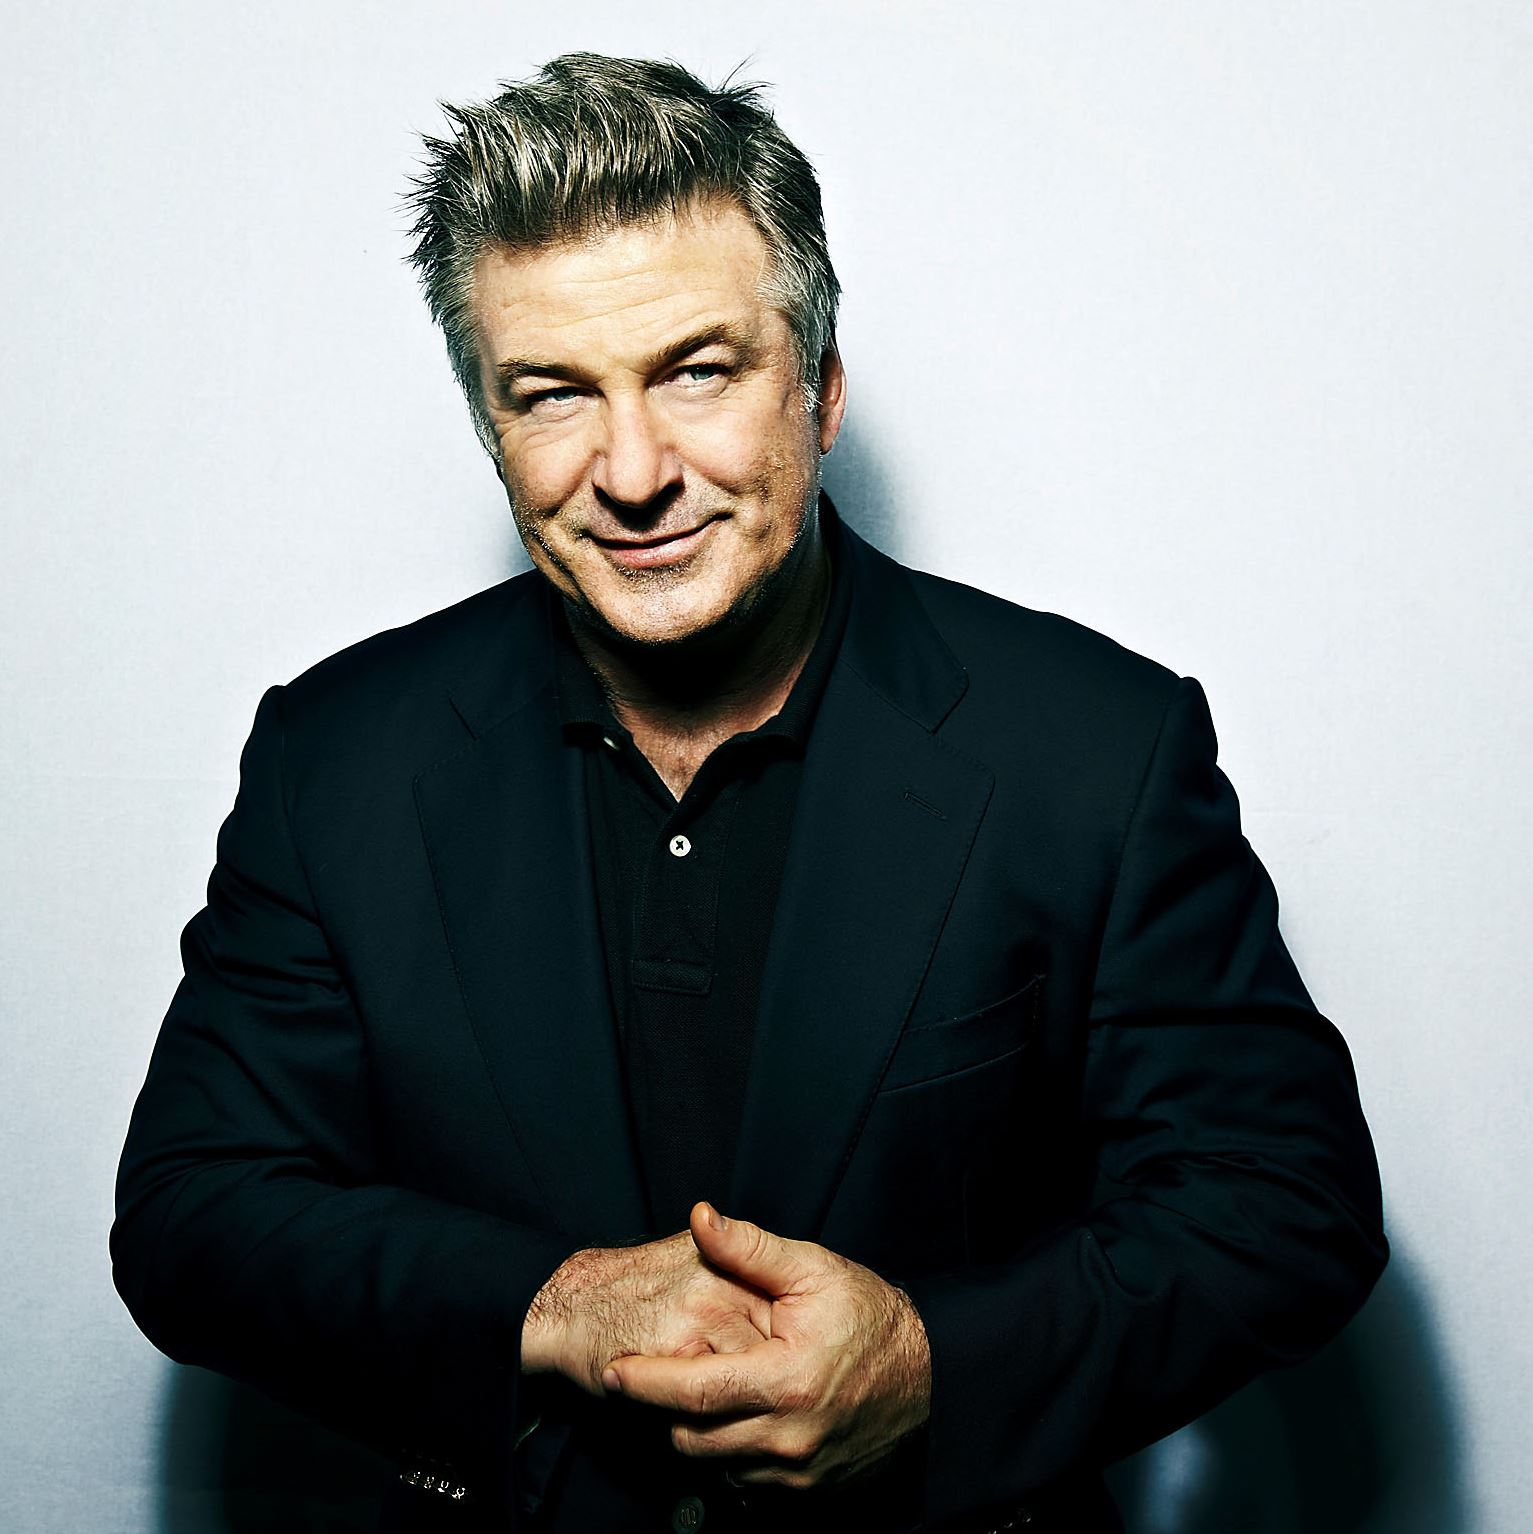 Actor Alec Baldwin brings a classical playlist to the PSO ... Alec Baldwin